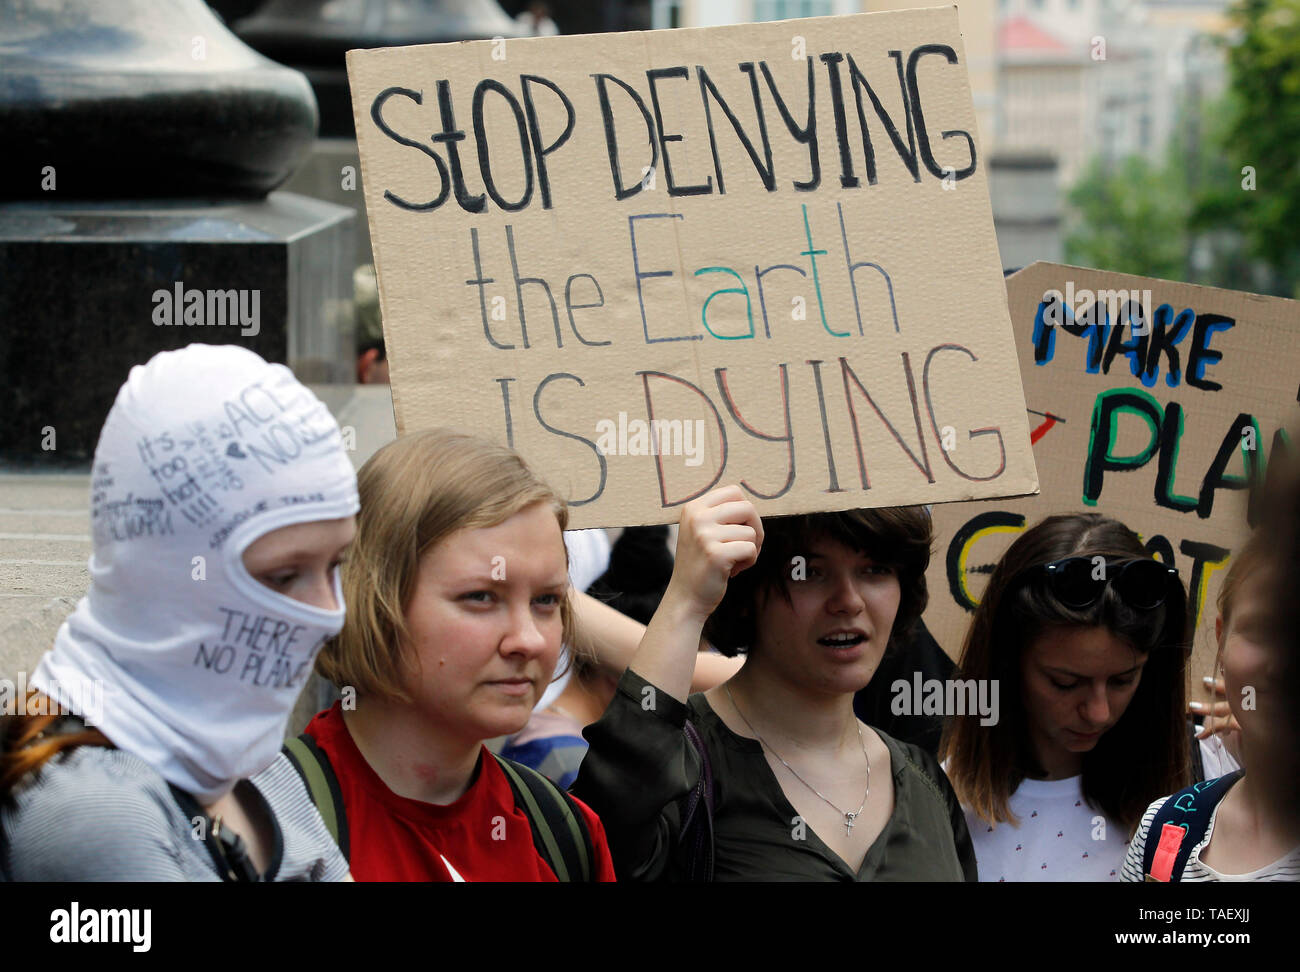 A demonstrator seen holding a placard that says stop denying the earth is dying during the climate strike. Climate strike as part of a global day of student protest, the Fridays for Future movement aiming to spark the world leaders into action on climate change near the Ukrainian Cabinet of Ministers in Kiev, Ukraine. Organizers expect more than one million young people over the world to join protest against global warming. Stock Photo